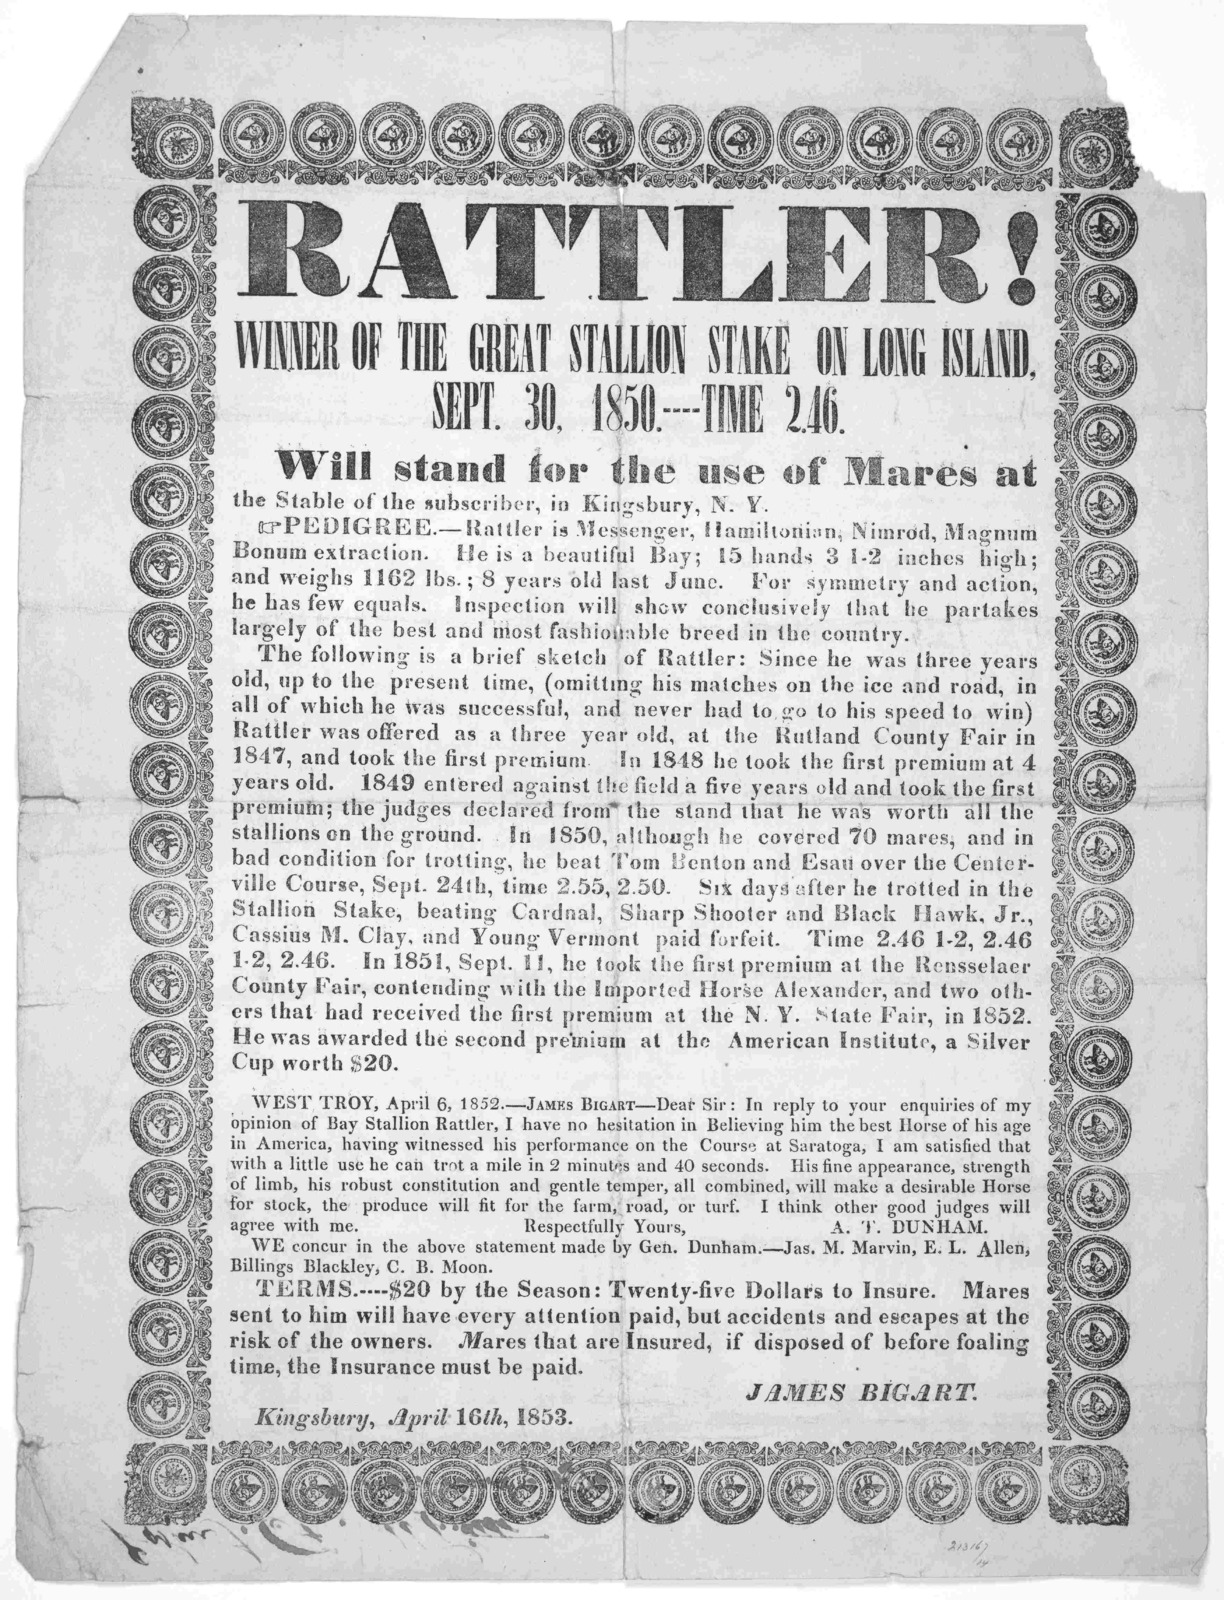 Rattler! Winner of the great stallion stake on Long Island, Sept. 30, 1850.---- Time 2.46. Will stand for the use of mares at the stable of the subscriber, in Kingsbury. N. Y. ... James Bigart. Kingsbury, April 16th, 1853.